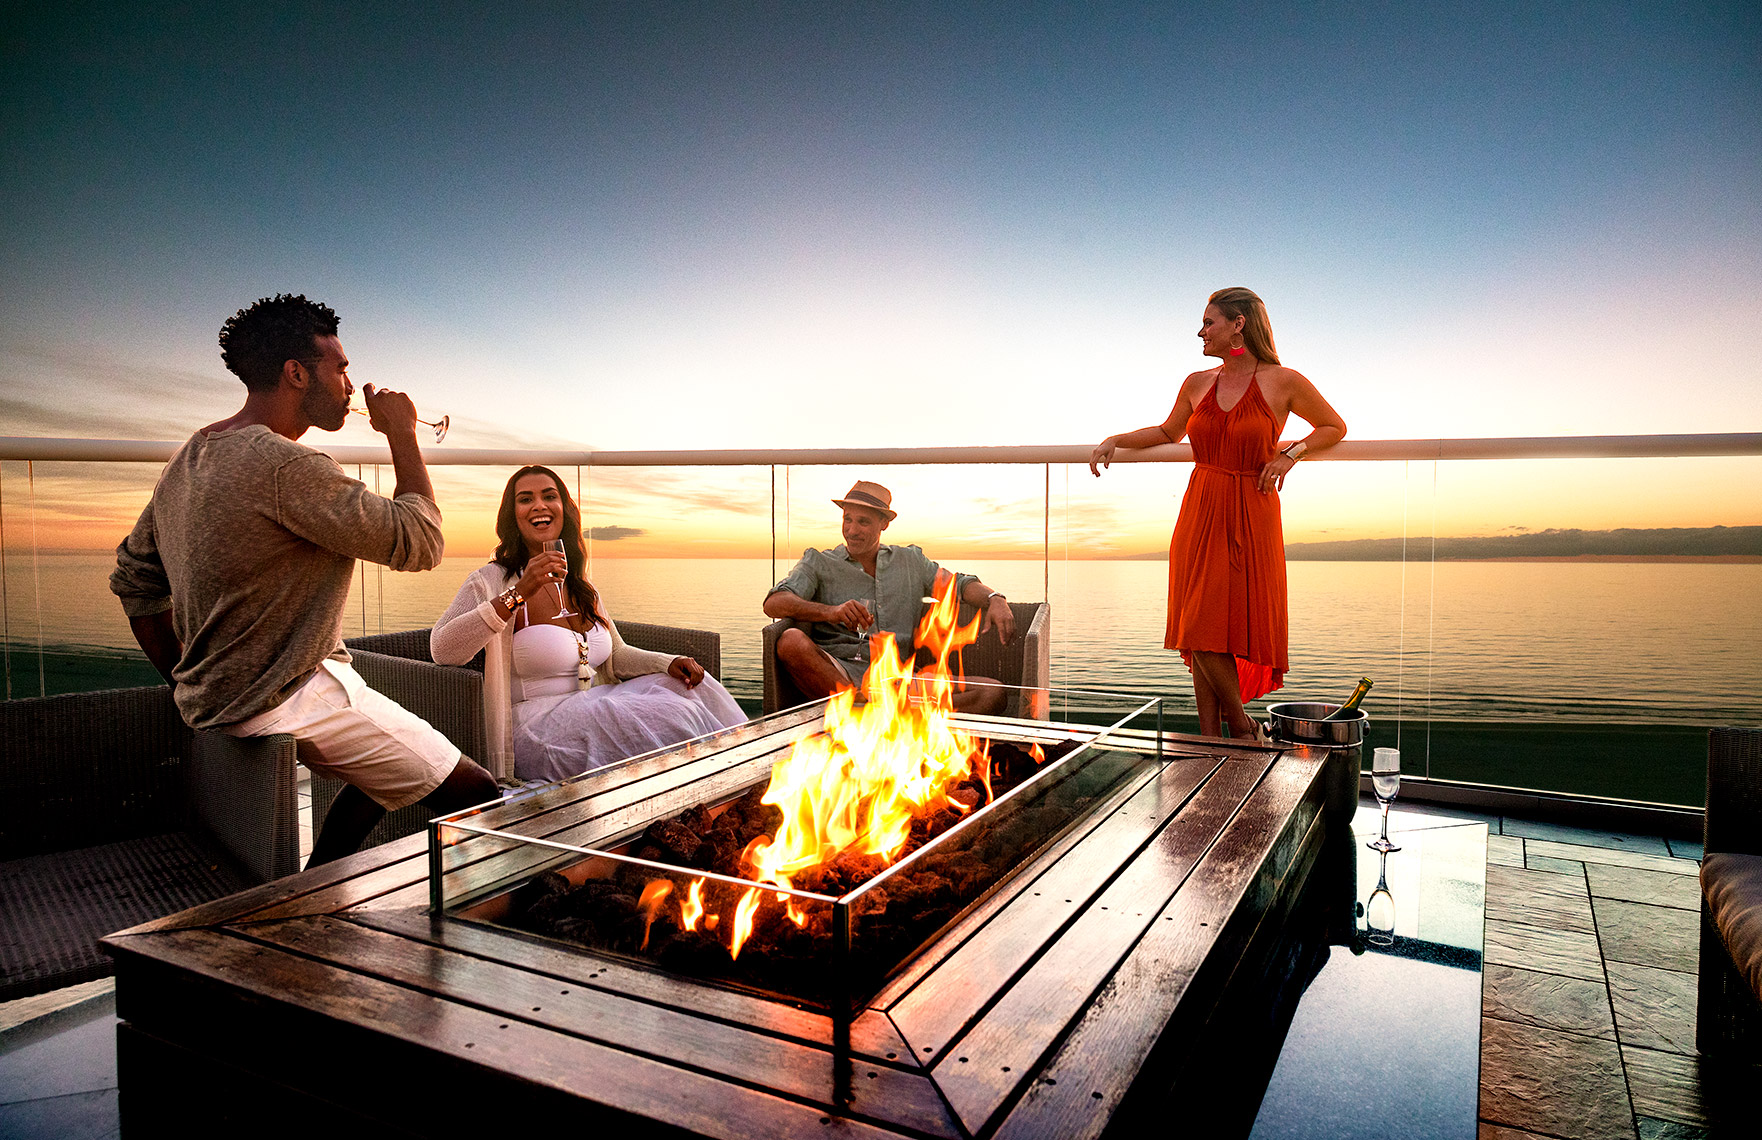 50_PresSuite_Fireplace_Couples_Day5_25327-1web.jpg